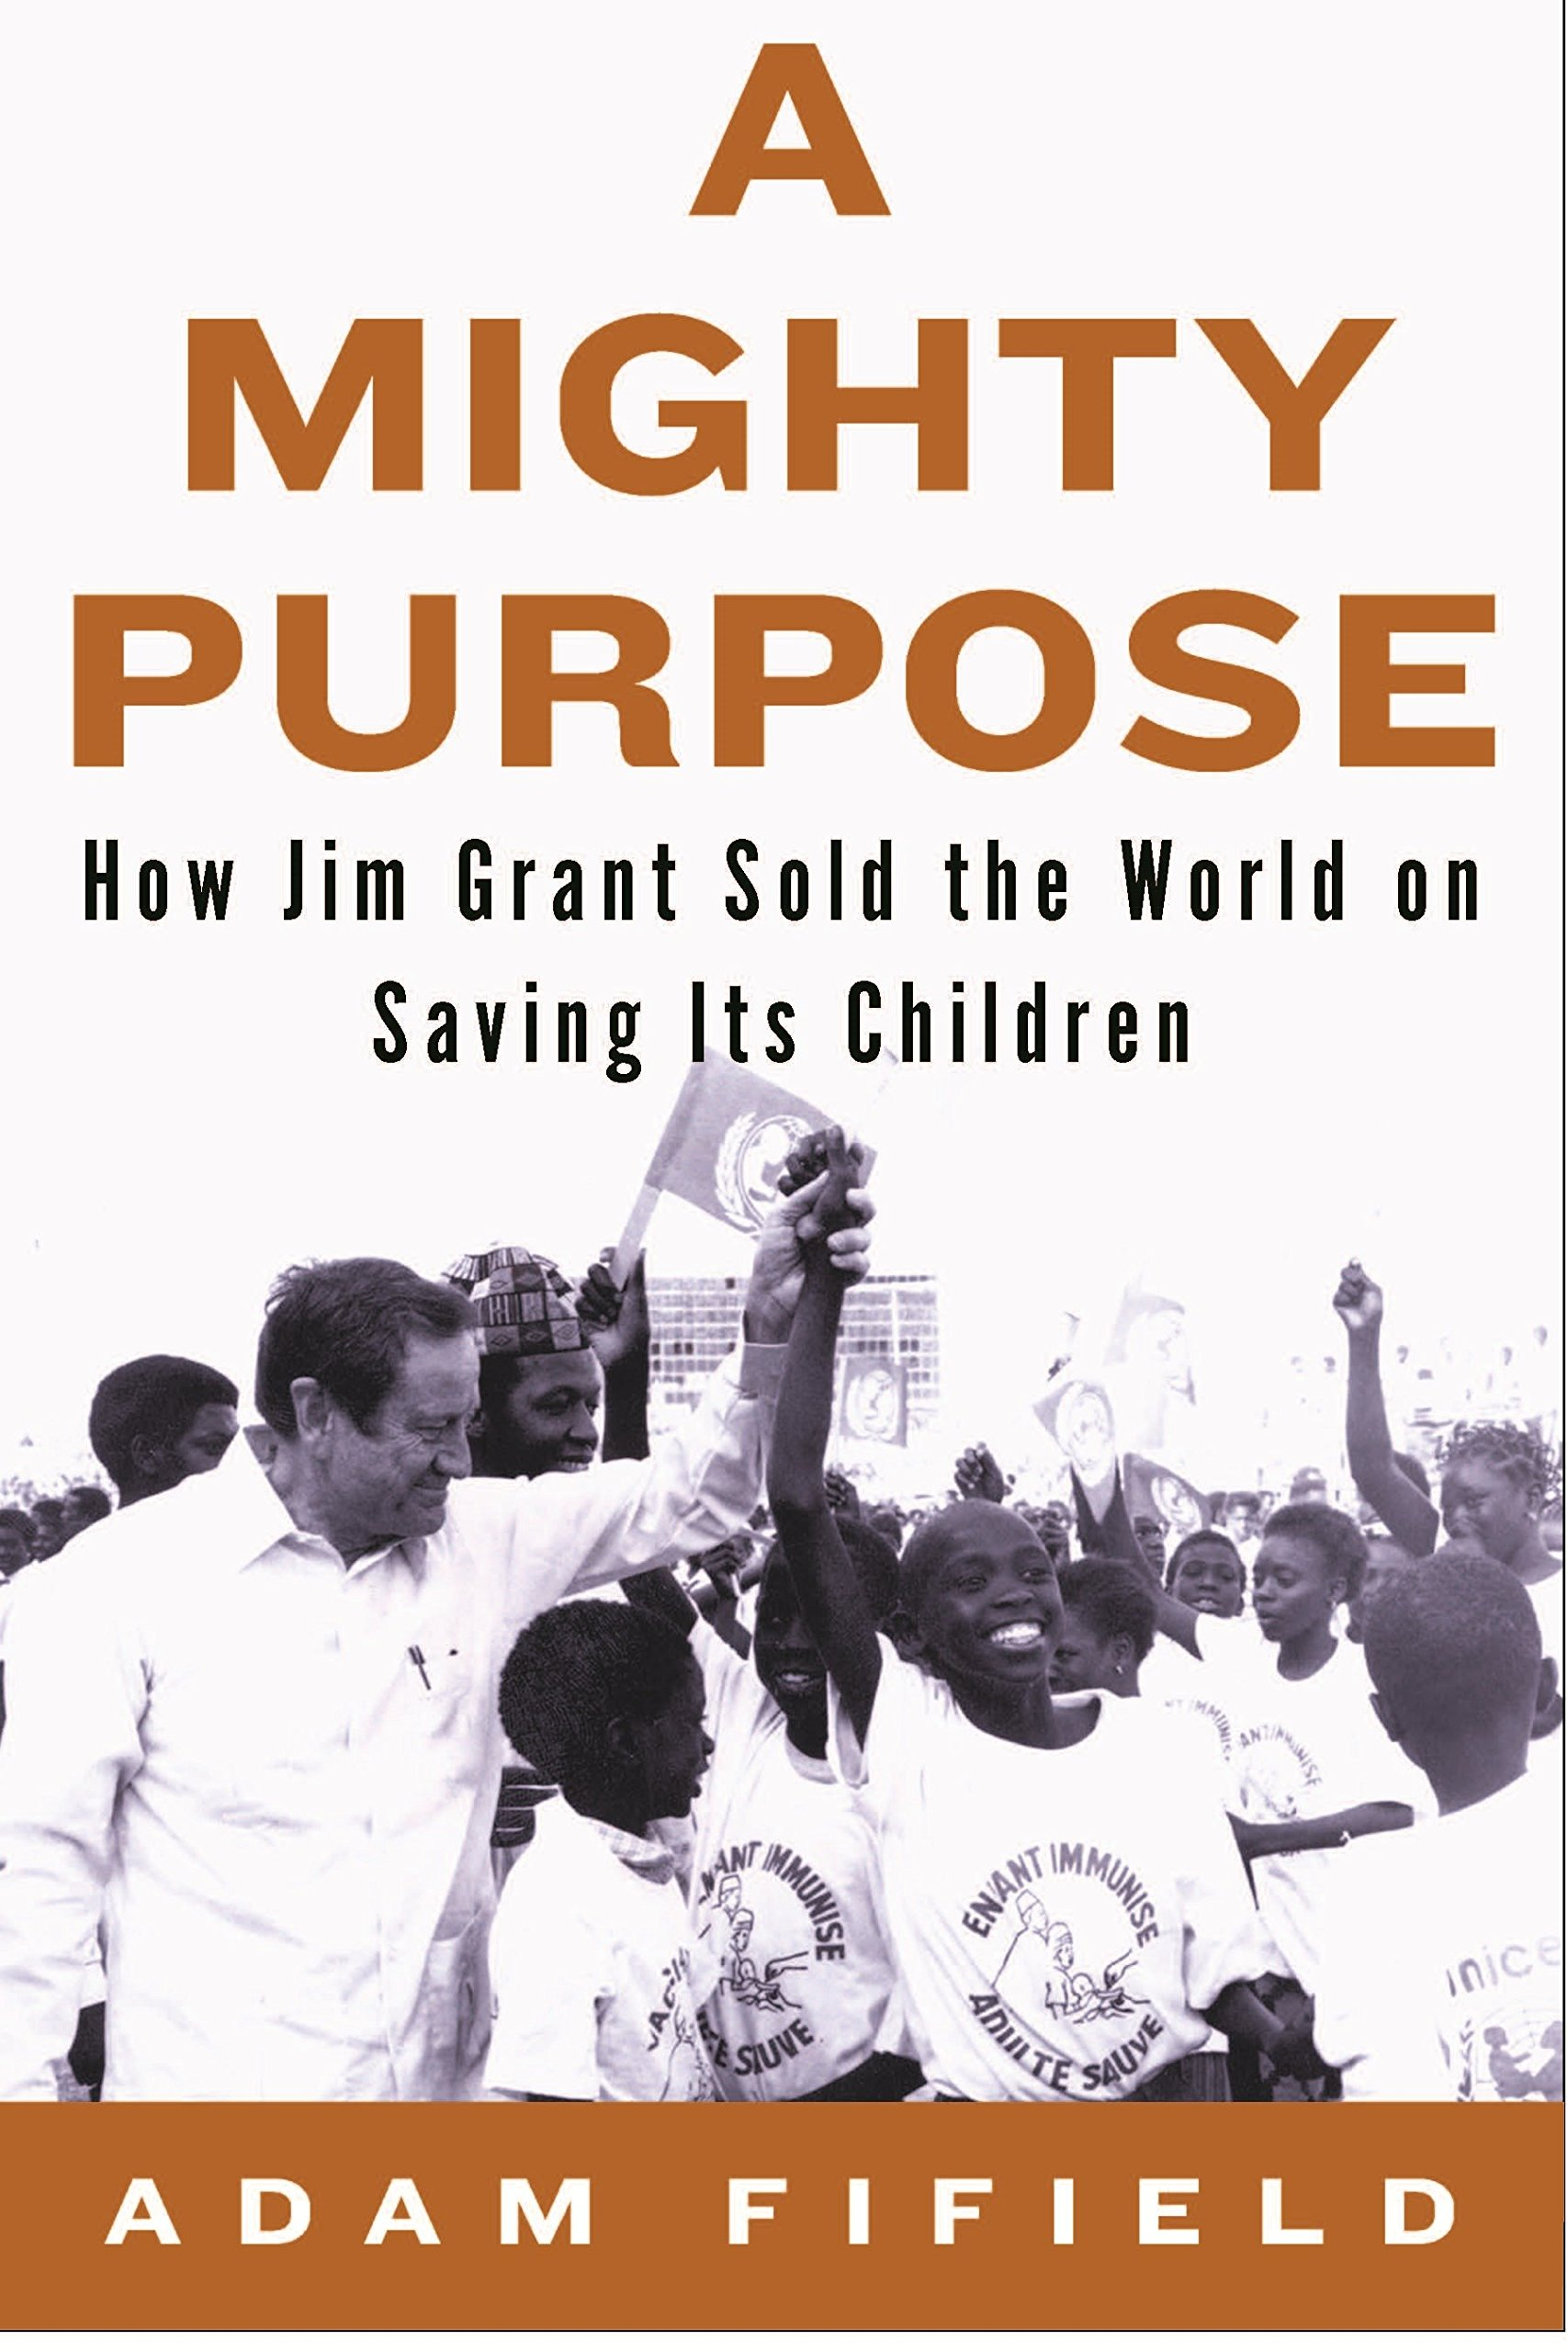 A Mighty Purpose: How Jim Grant Sold the World on Saving Its Children PDF